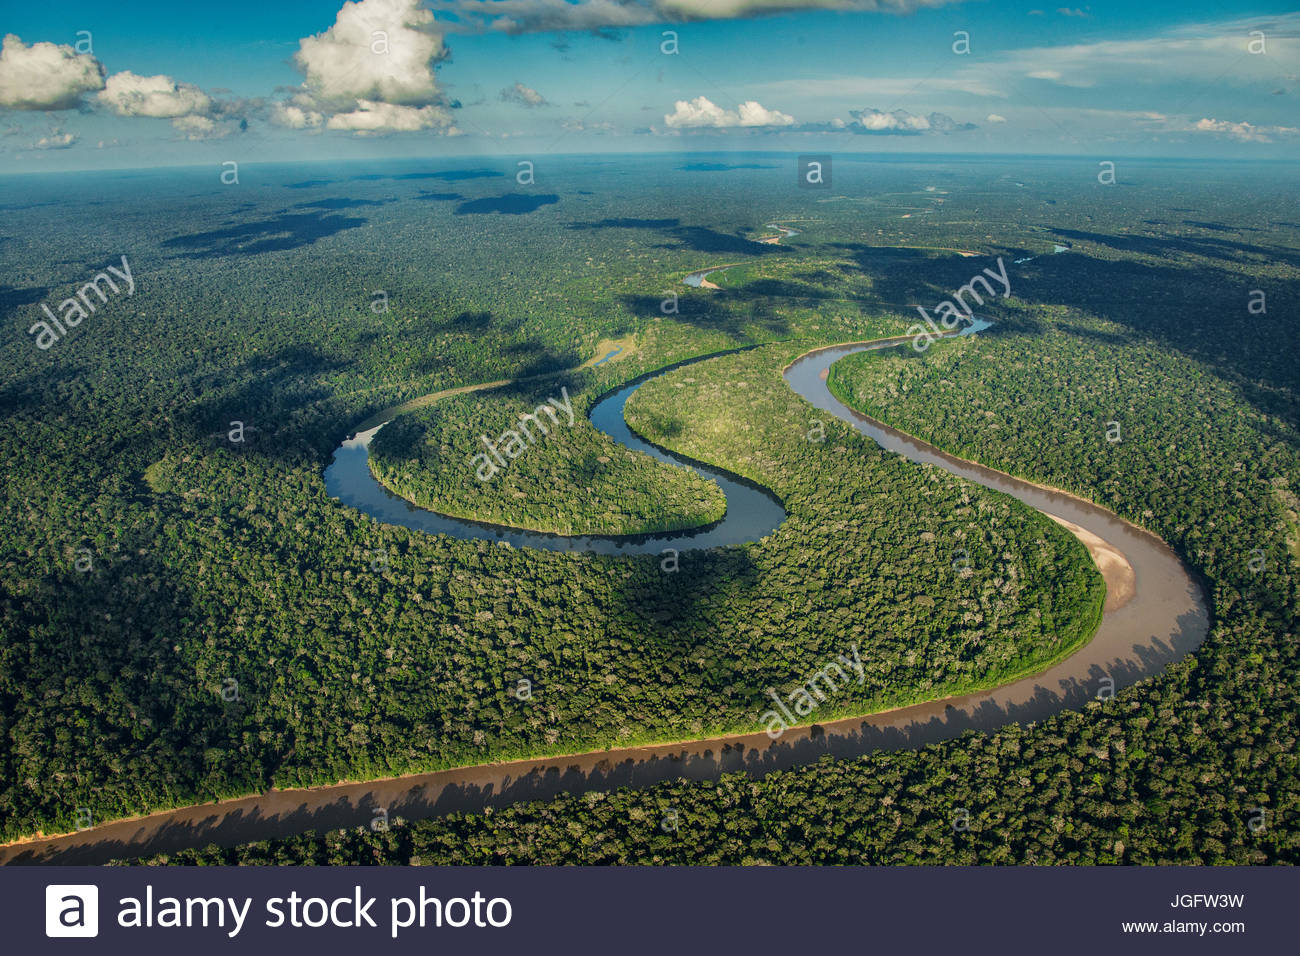 The Manu River winds past an oxbow lake, Cocha Salvador, in Manu National Park. - Stock Image